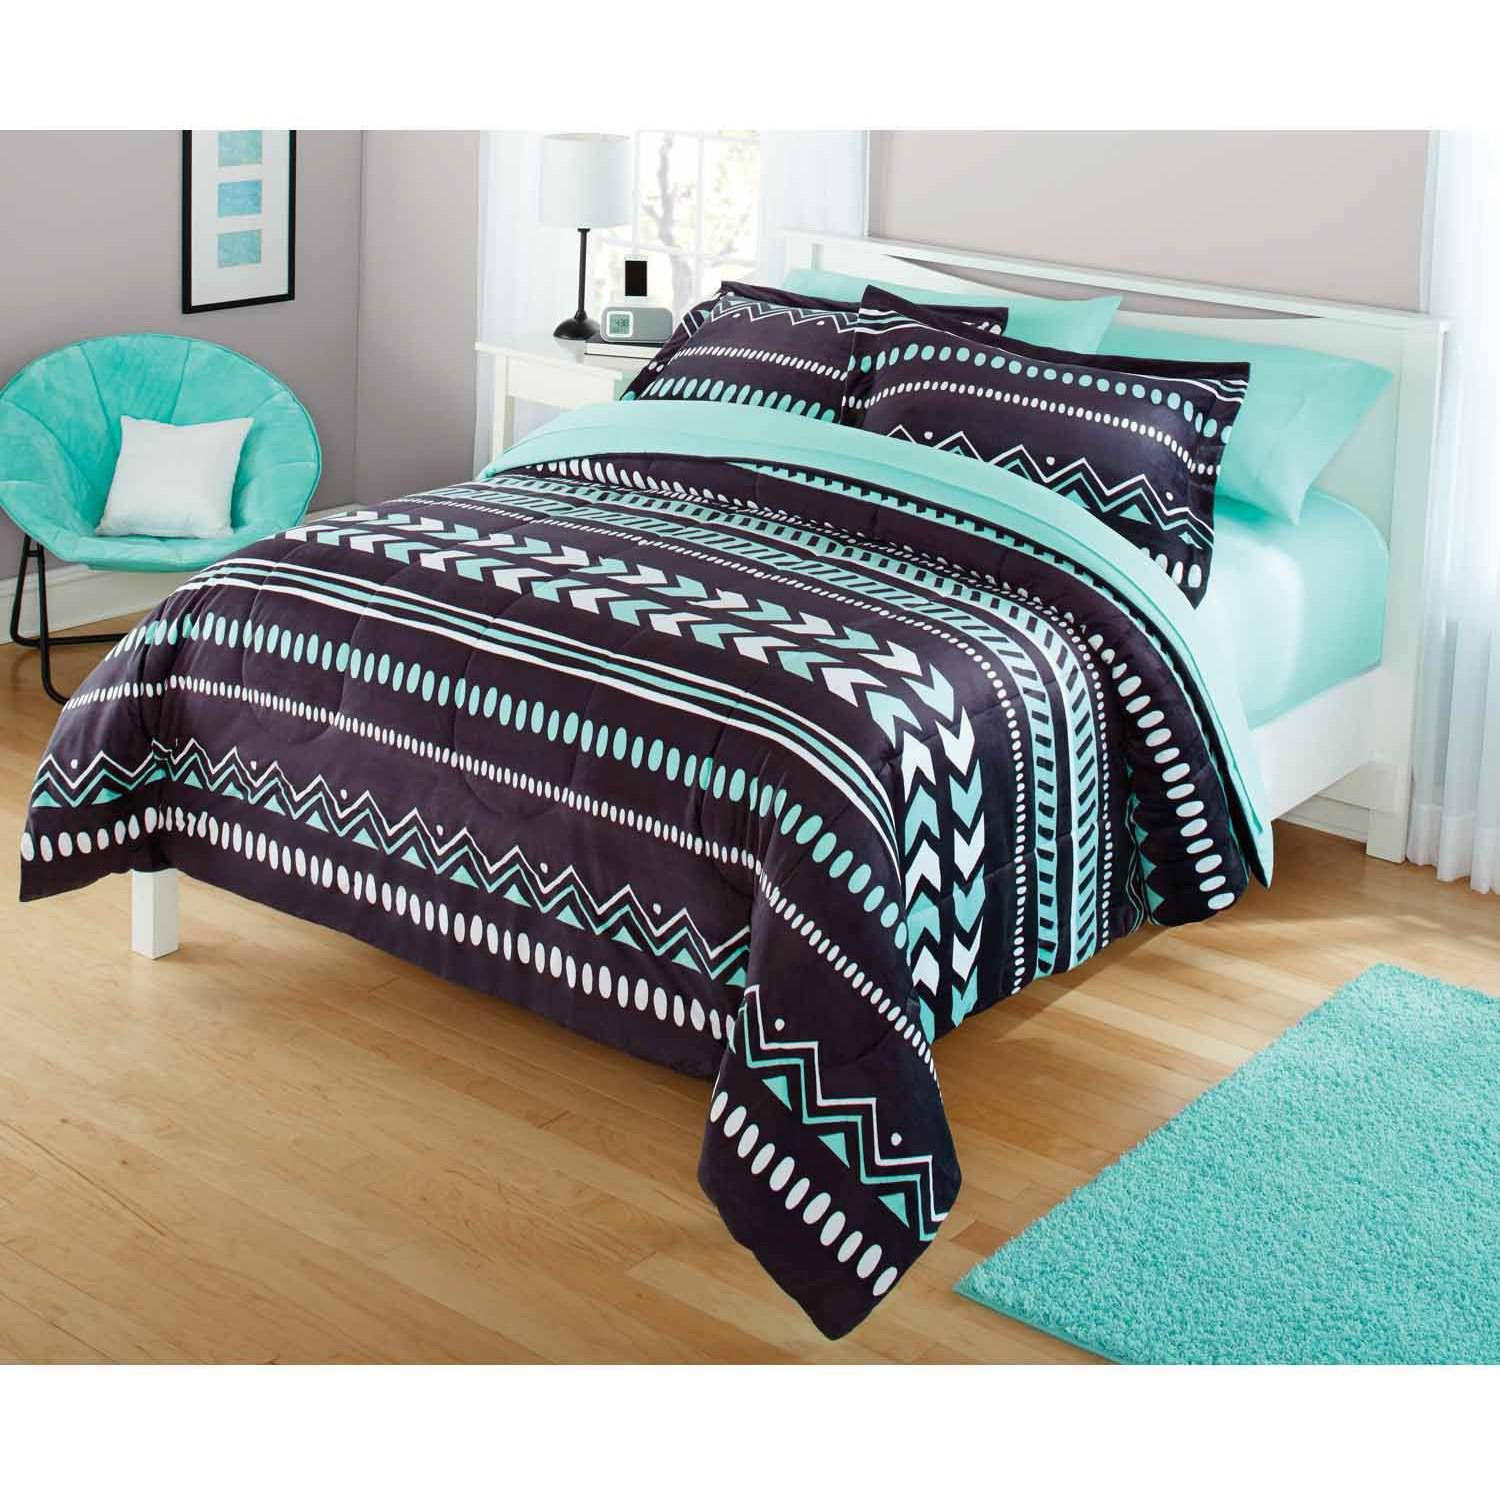 Your Zone Tribal Bedding Comforter Set Walmartcom Teen Stuff